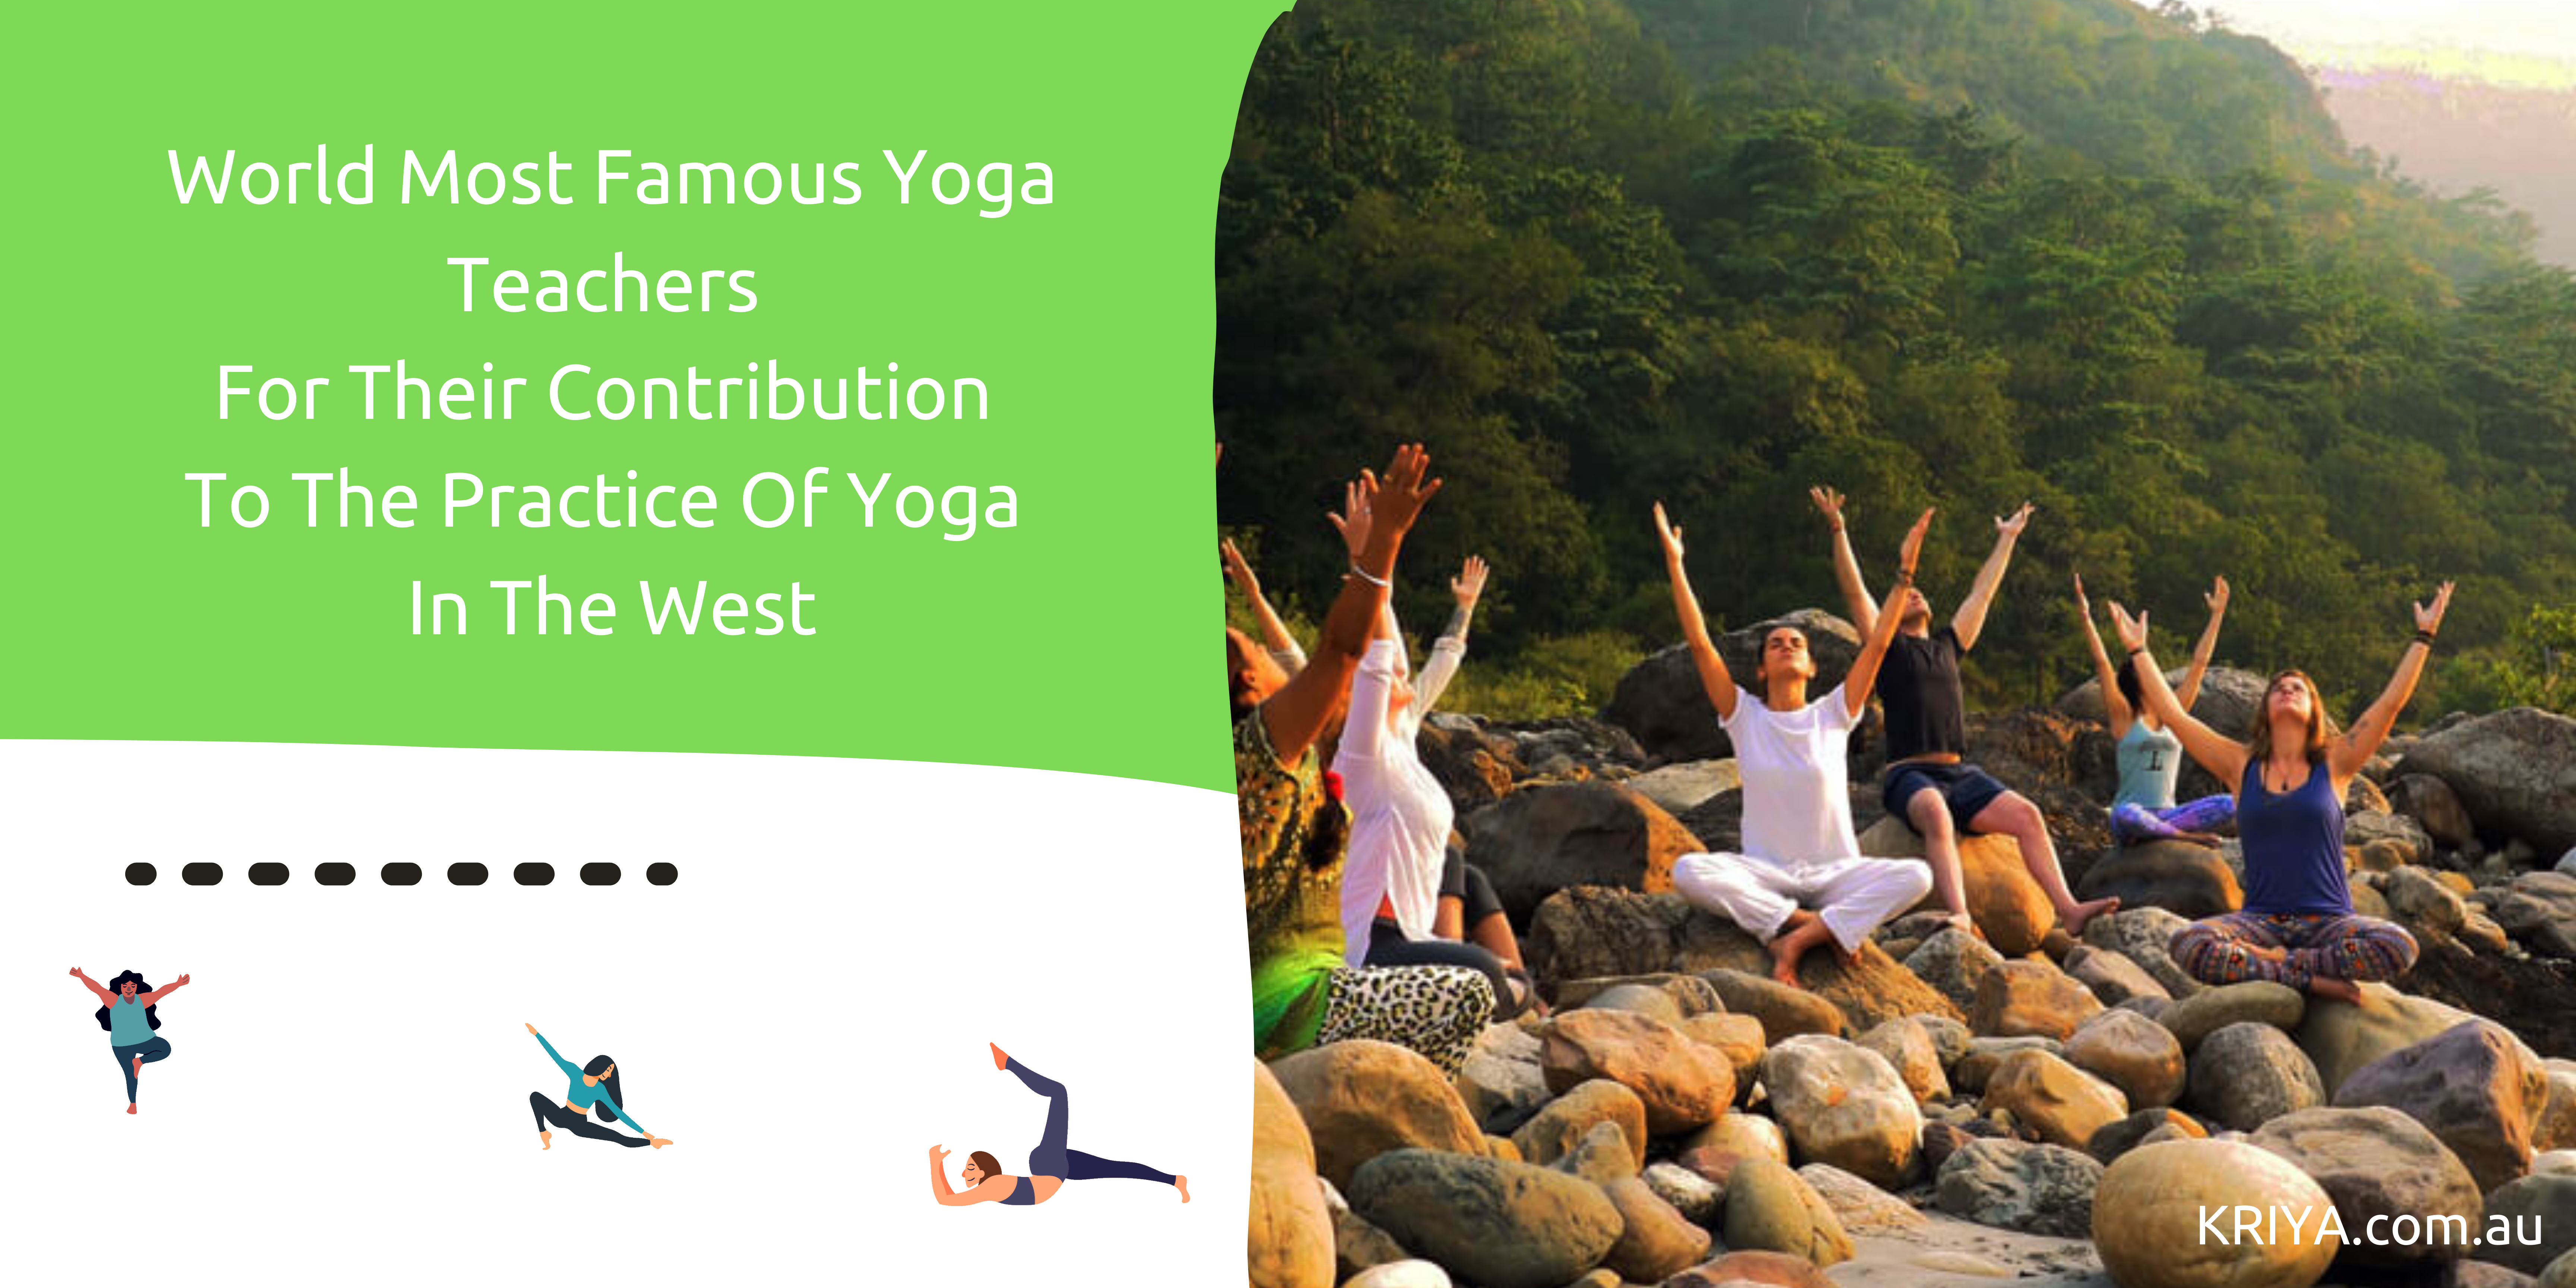 World Most Famous Yoga Teachers for Their Contribution to the Practice of Yoga in the West